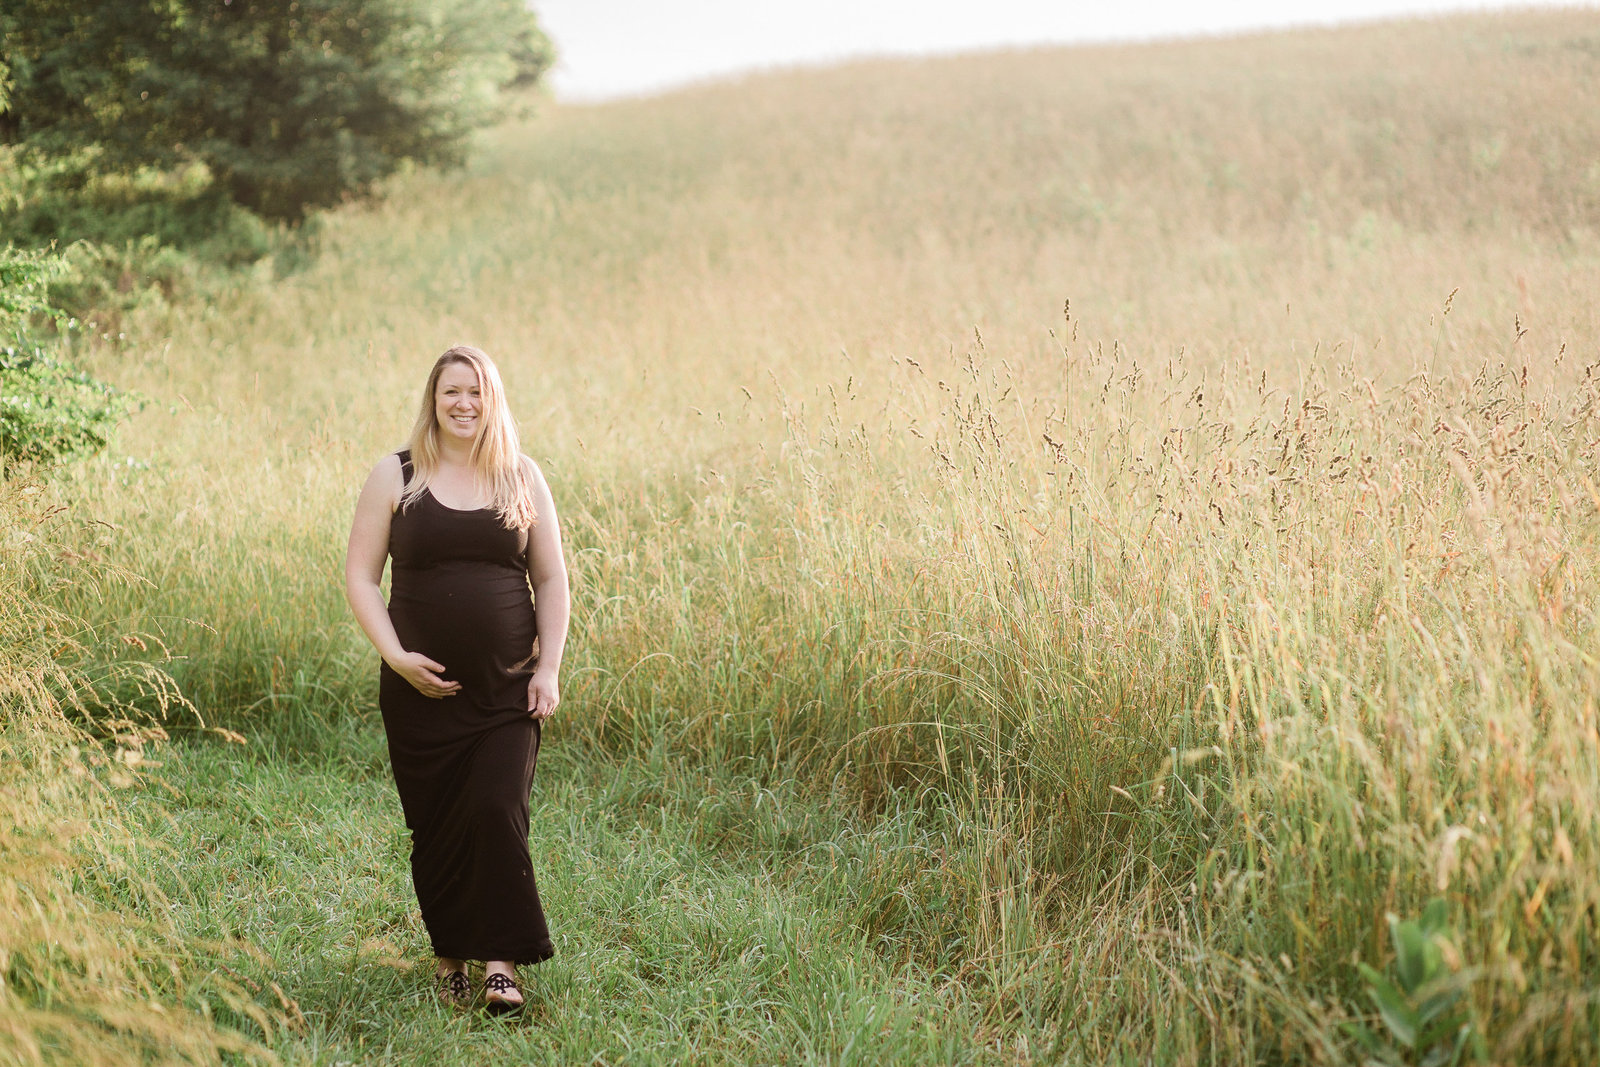 SOC_MeghanElizabethMaternity_6.8.19_WEB (28 of 51)